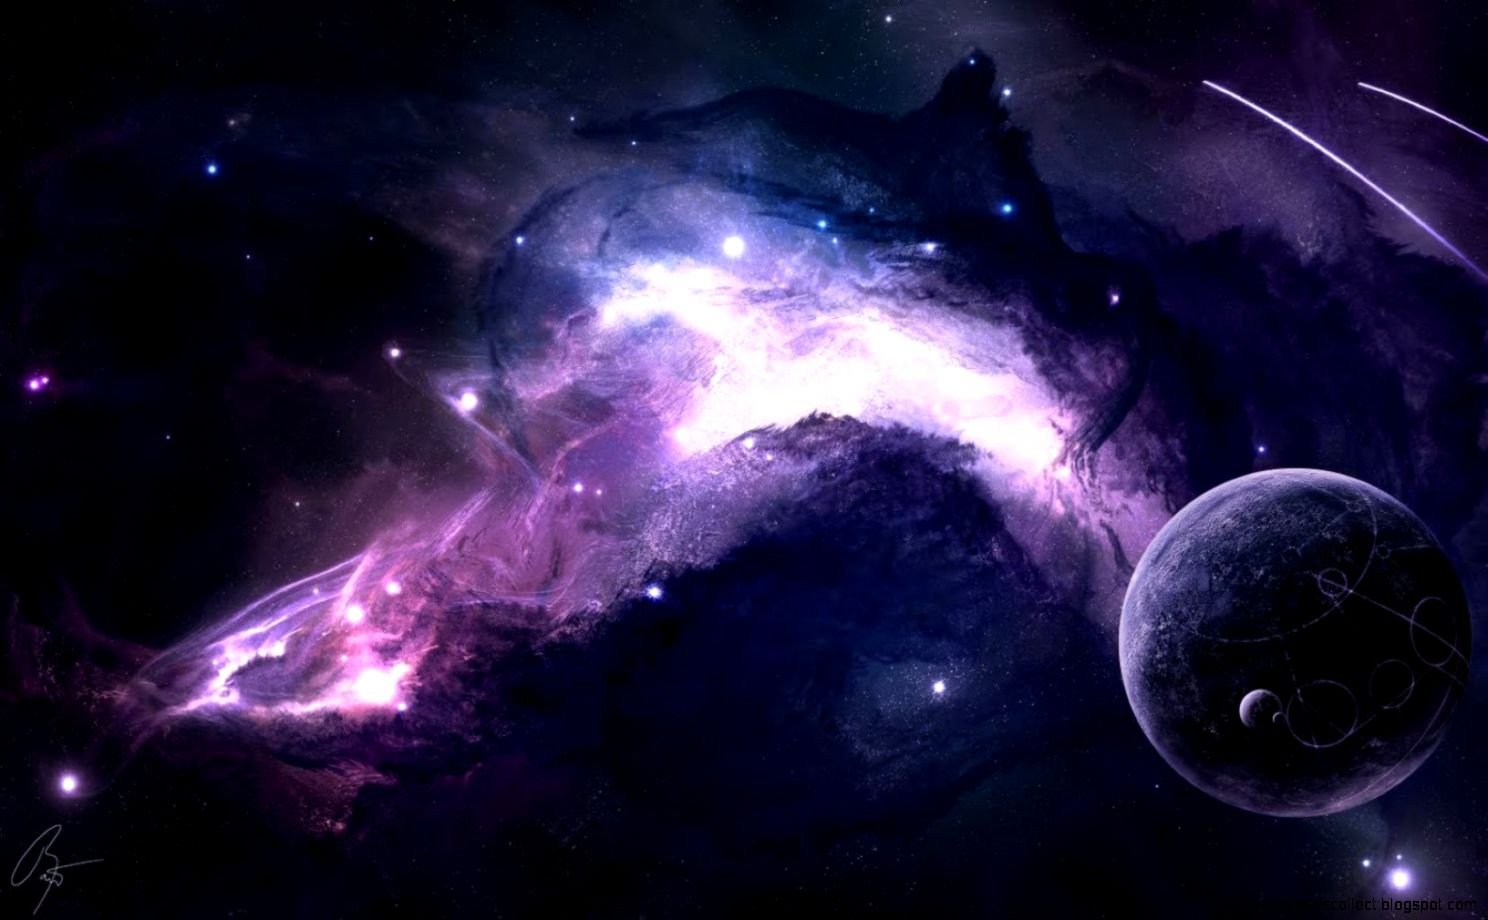 Download 3d space wallpaper hd wallpapers collection - Abstract space wallpaper ...